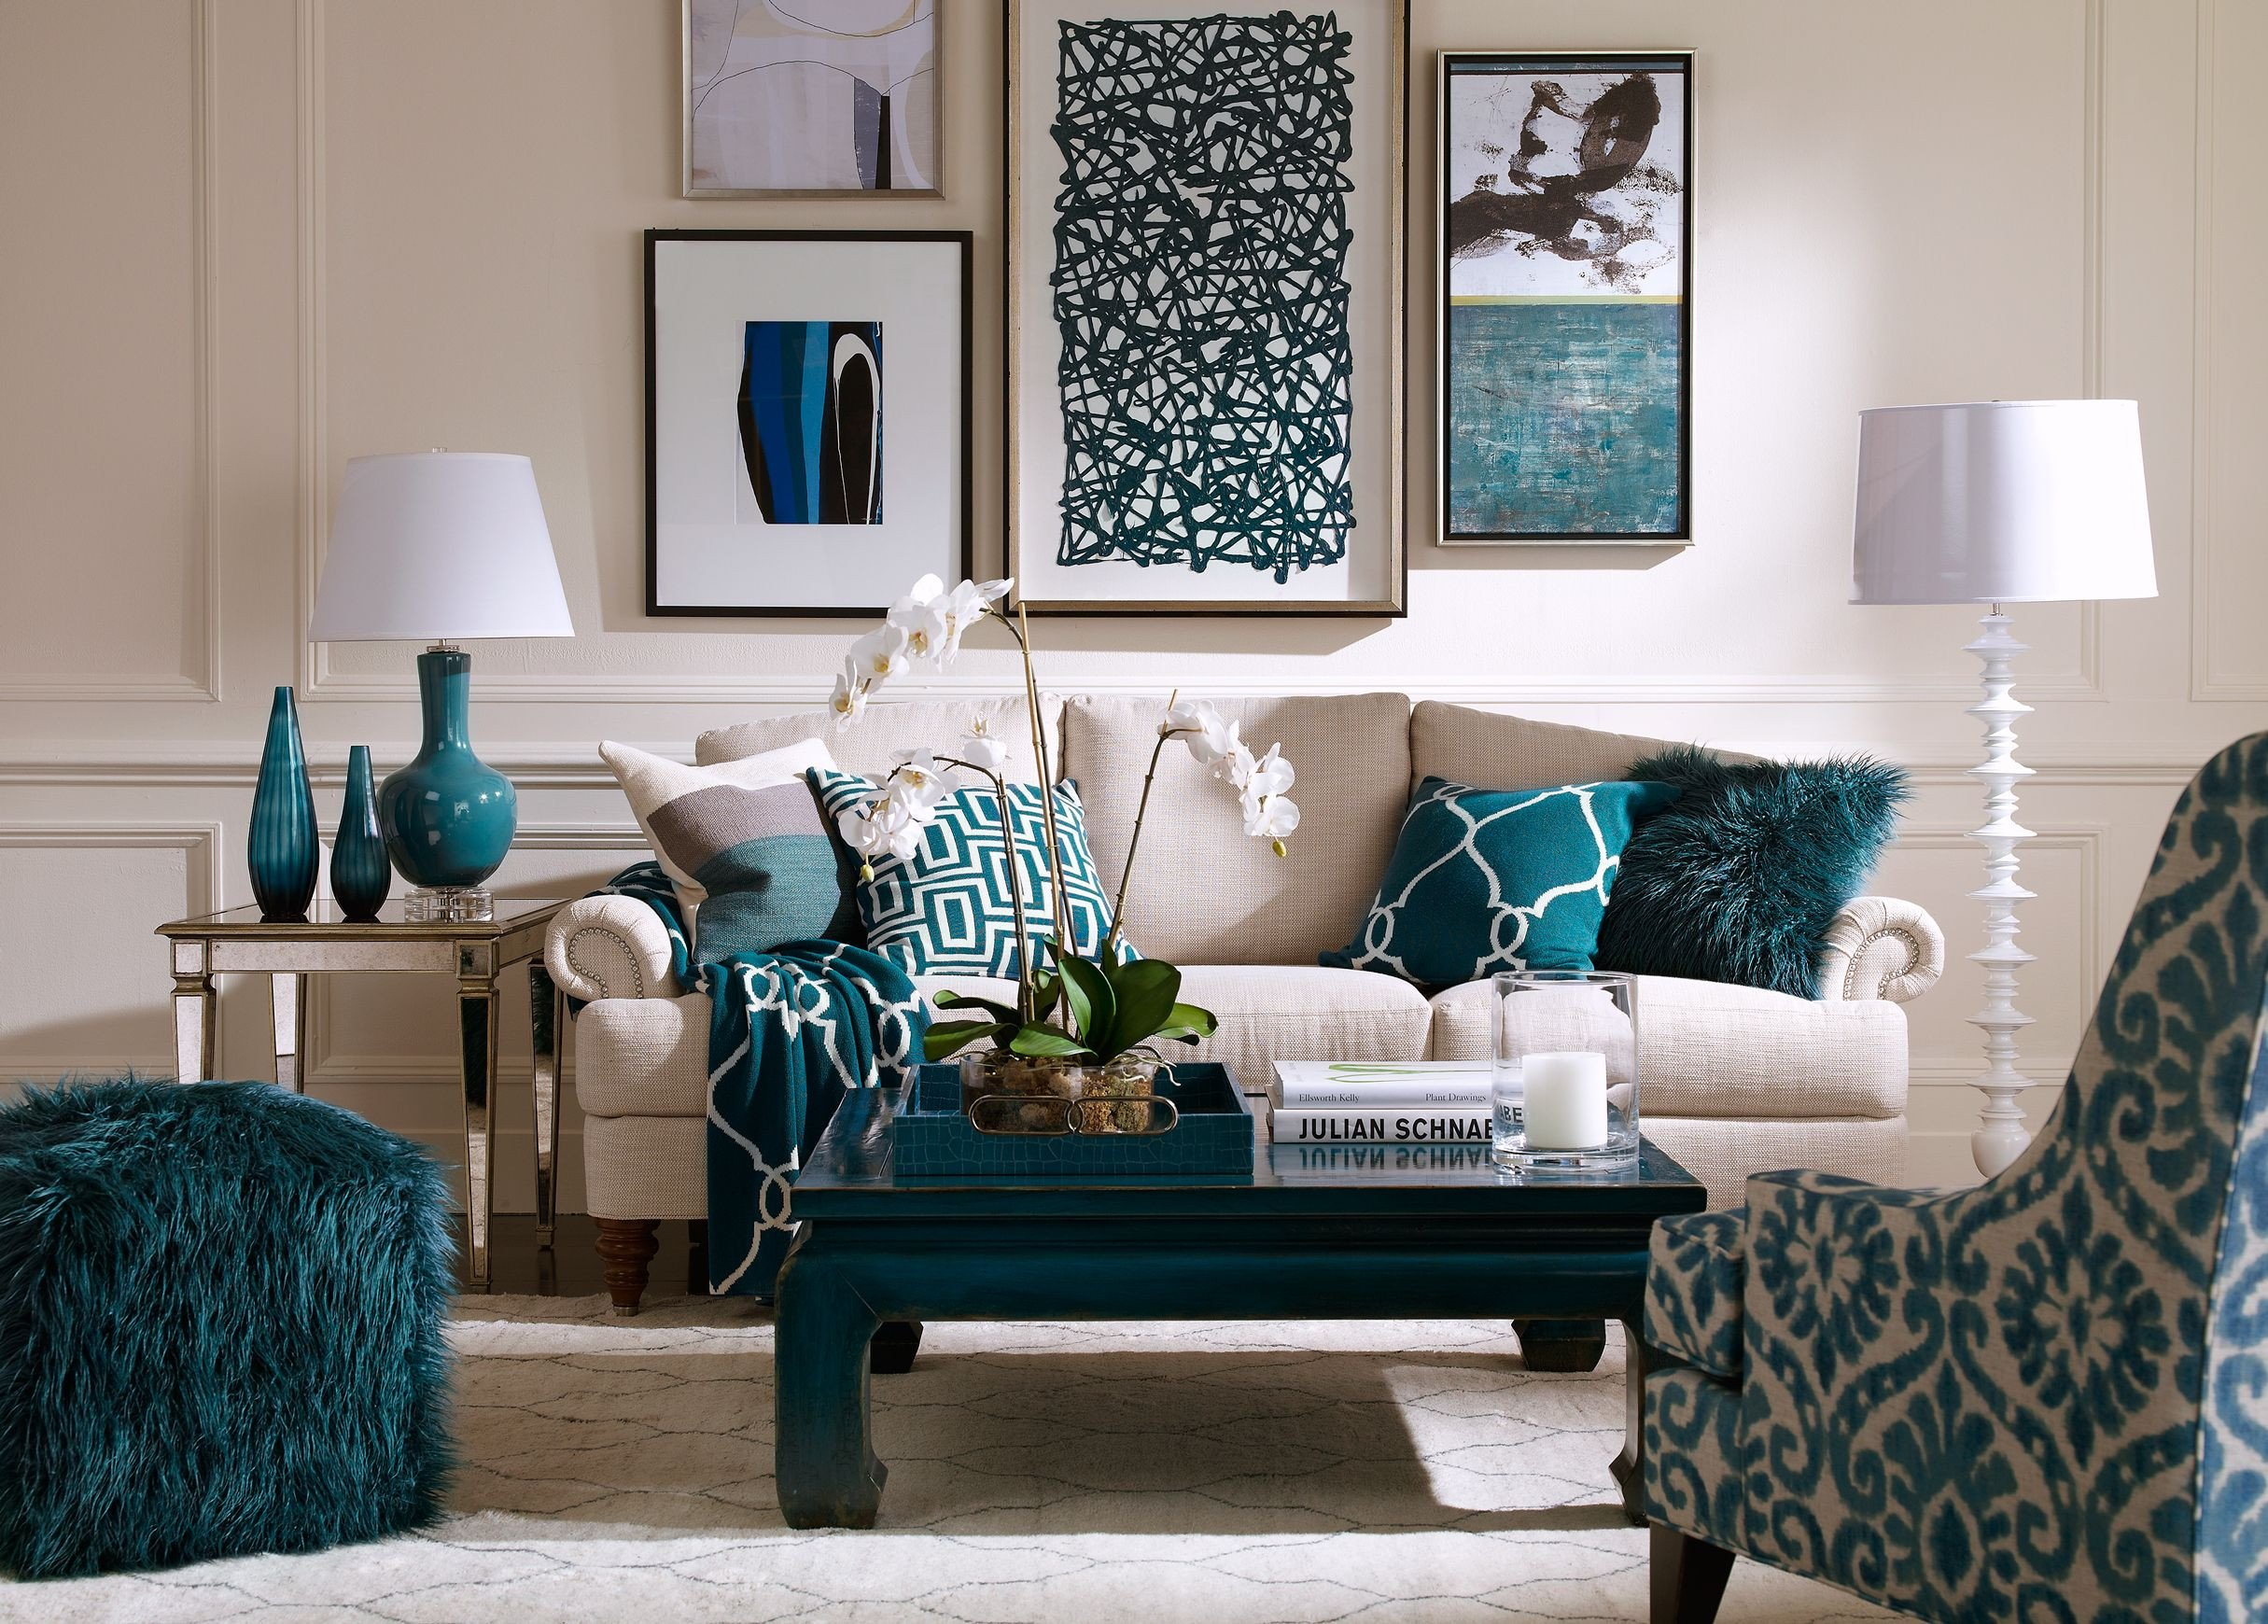 Teal Decor for Living Room Turquoise Dining Room Ideas Turquoise Rooms Turquoise